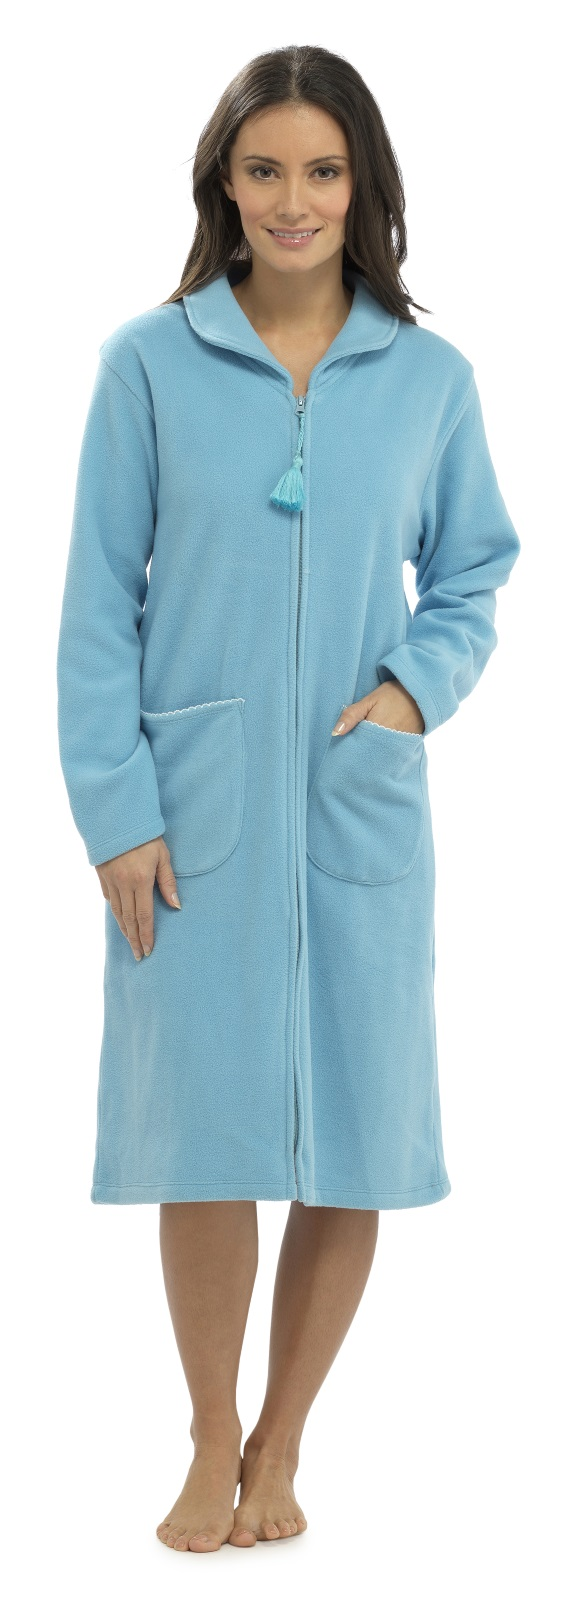 Product Features It is the perfect robe for women and man after a shower or bath.